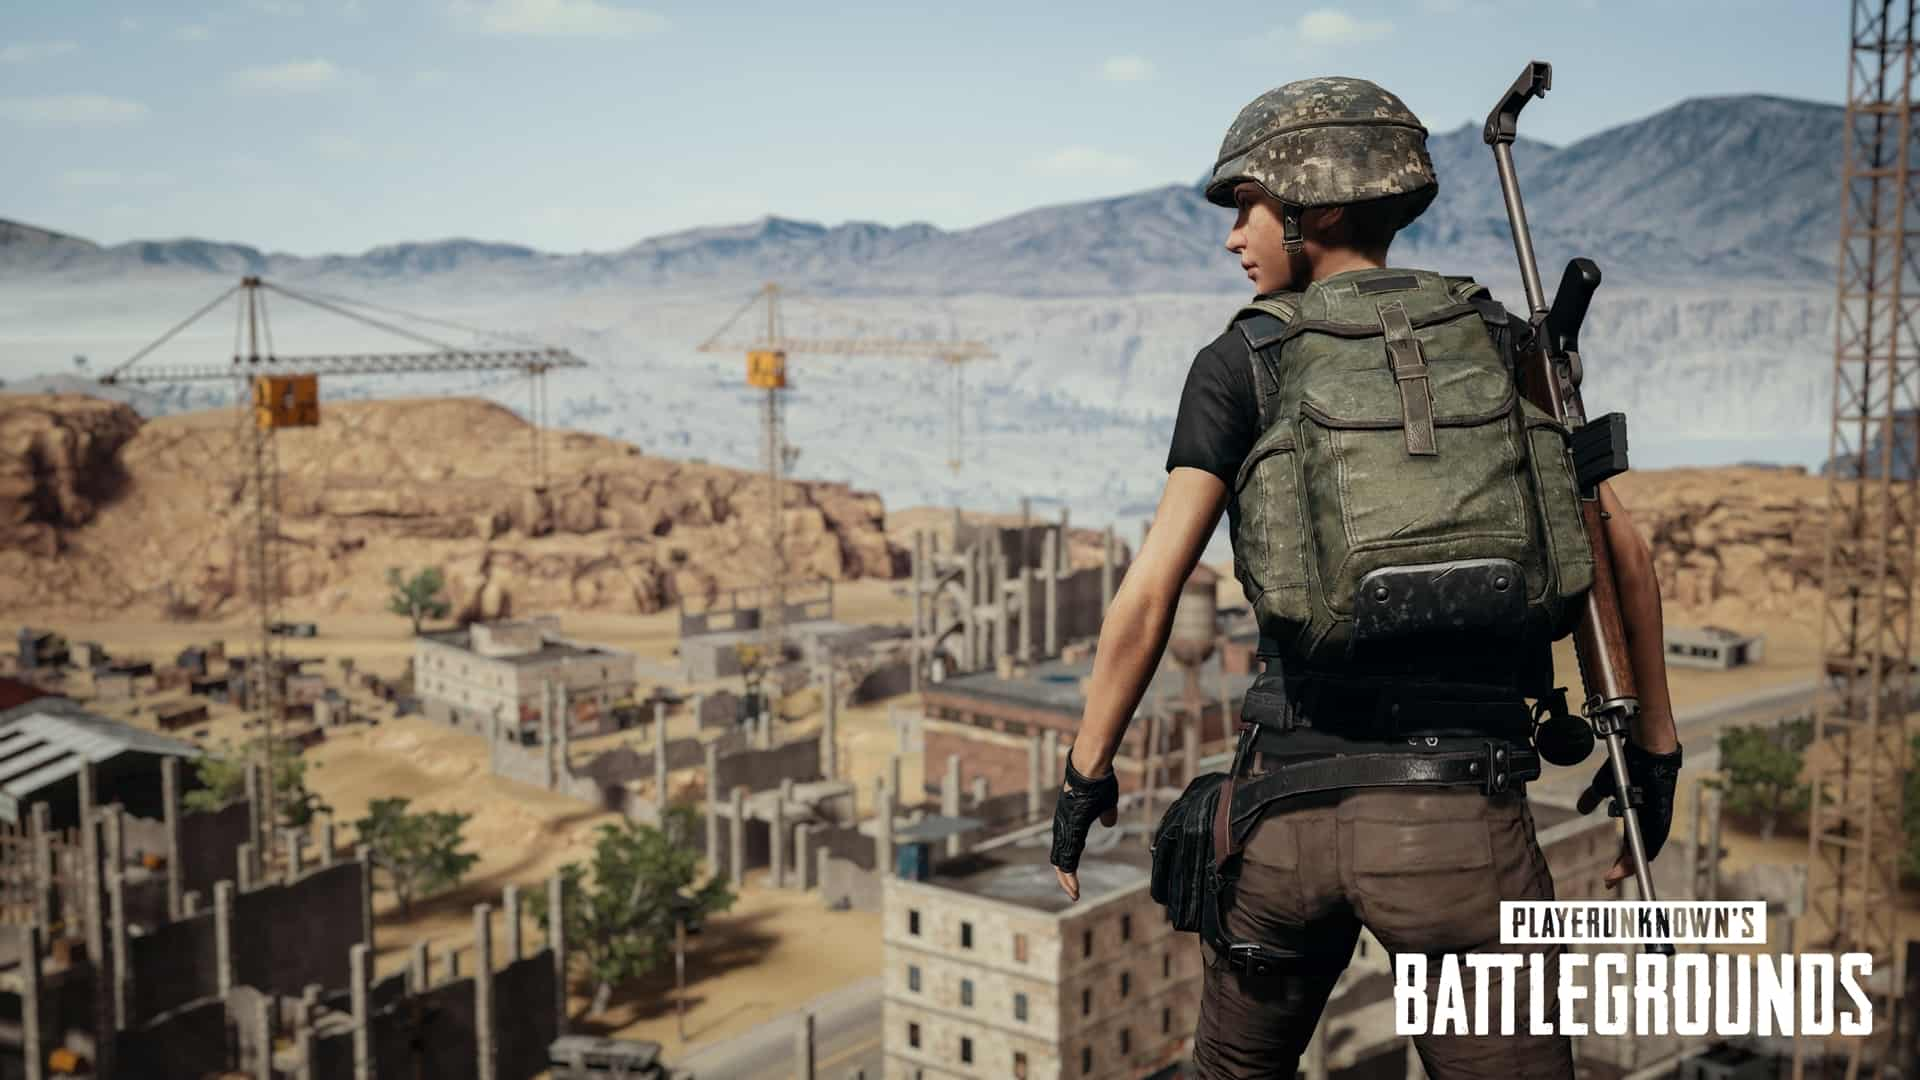 PUBG Mobile Update 0.4.0 Patch Notes Details Huge